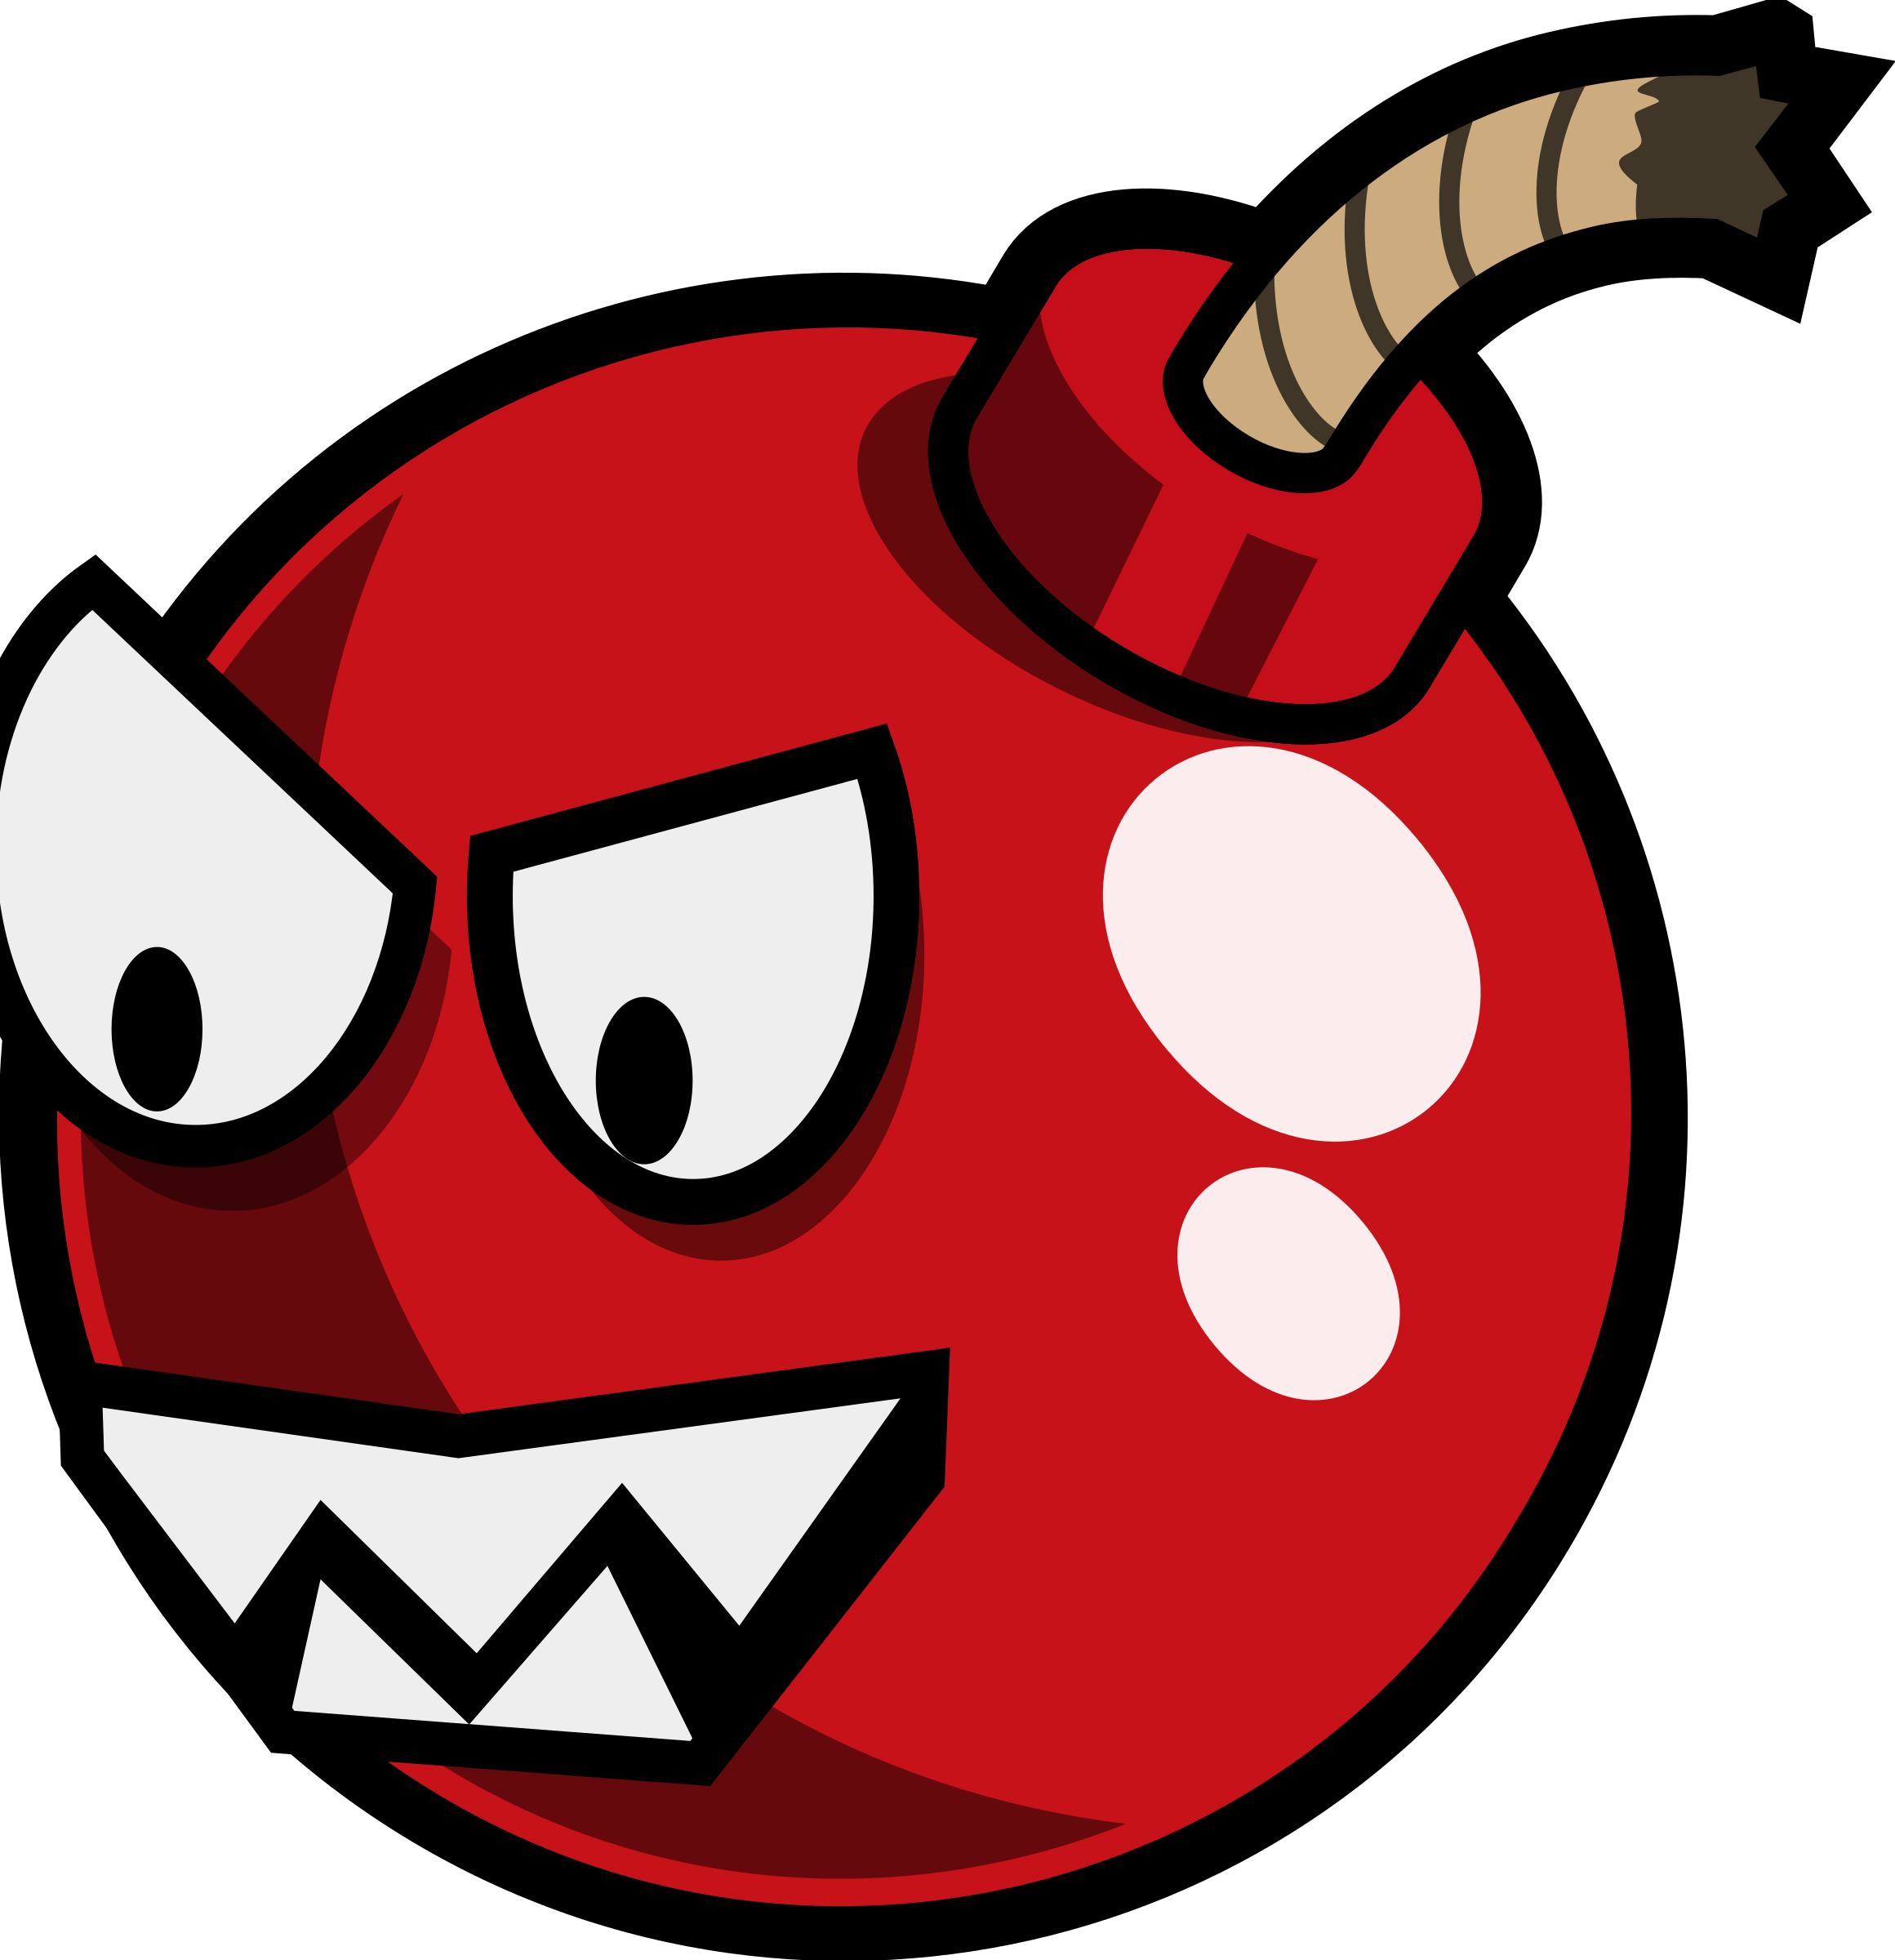 Cartoon cherry enemy remix. Bomb clipart simple